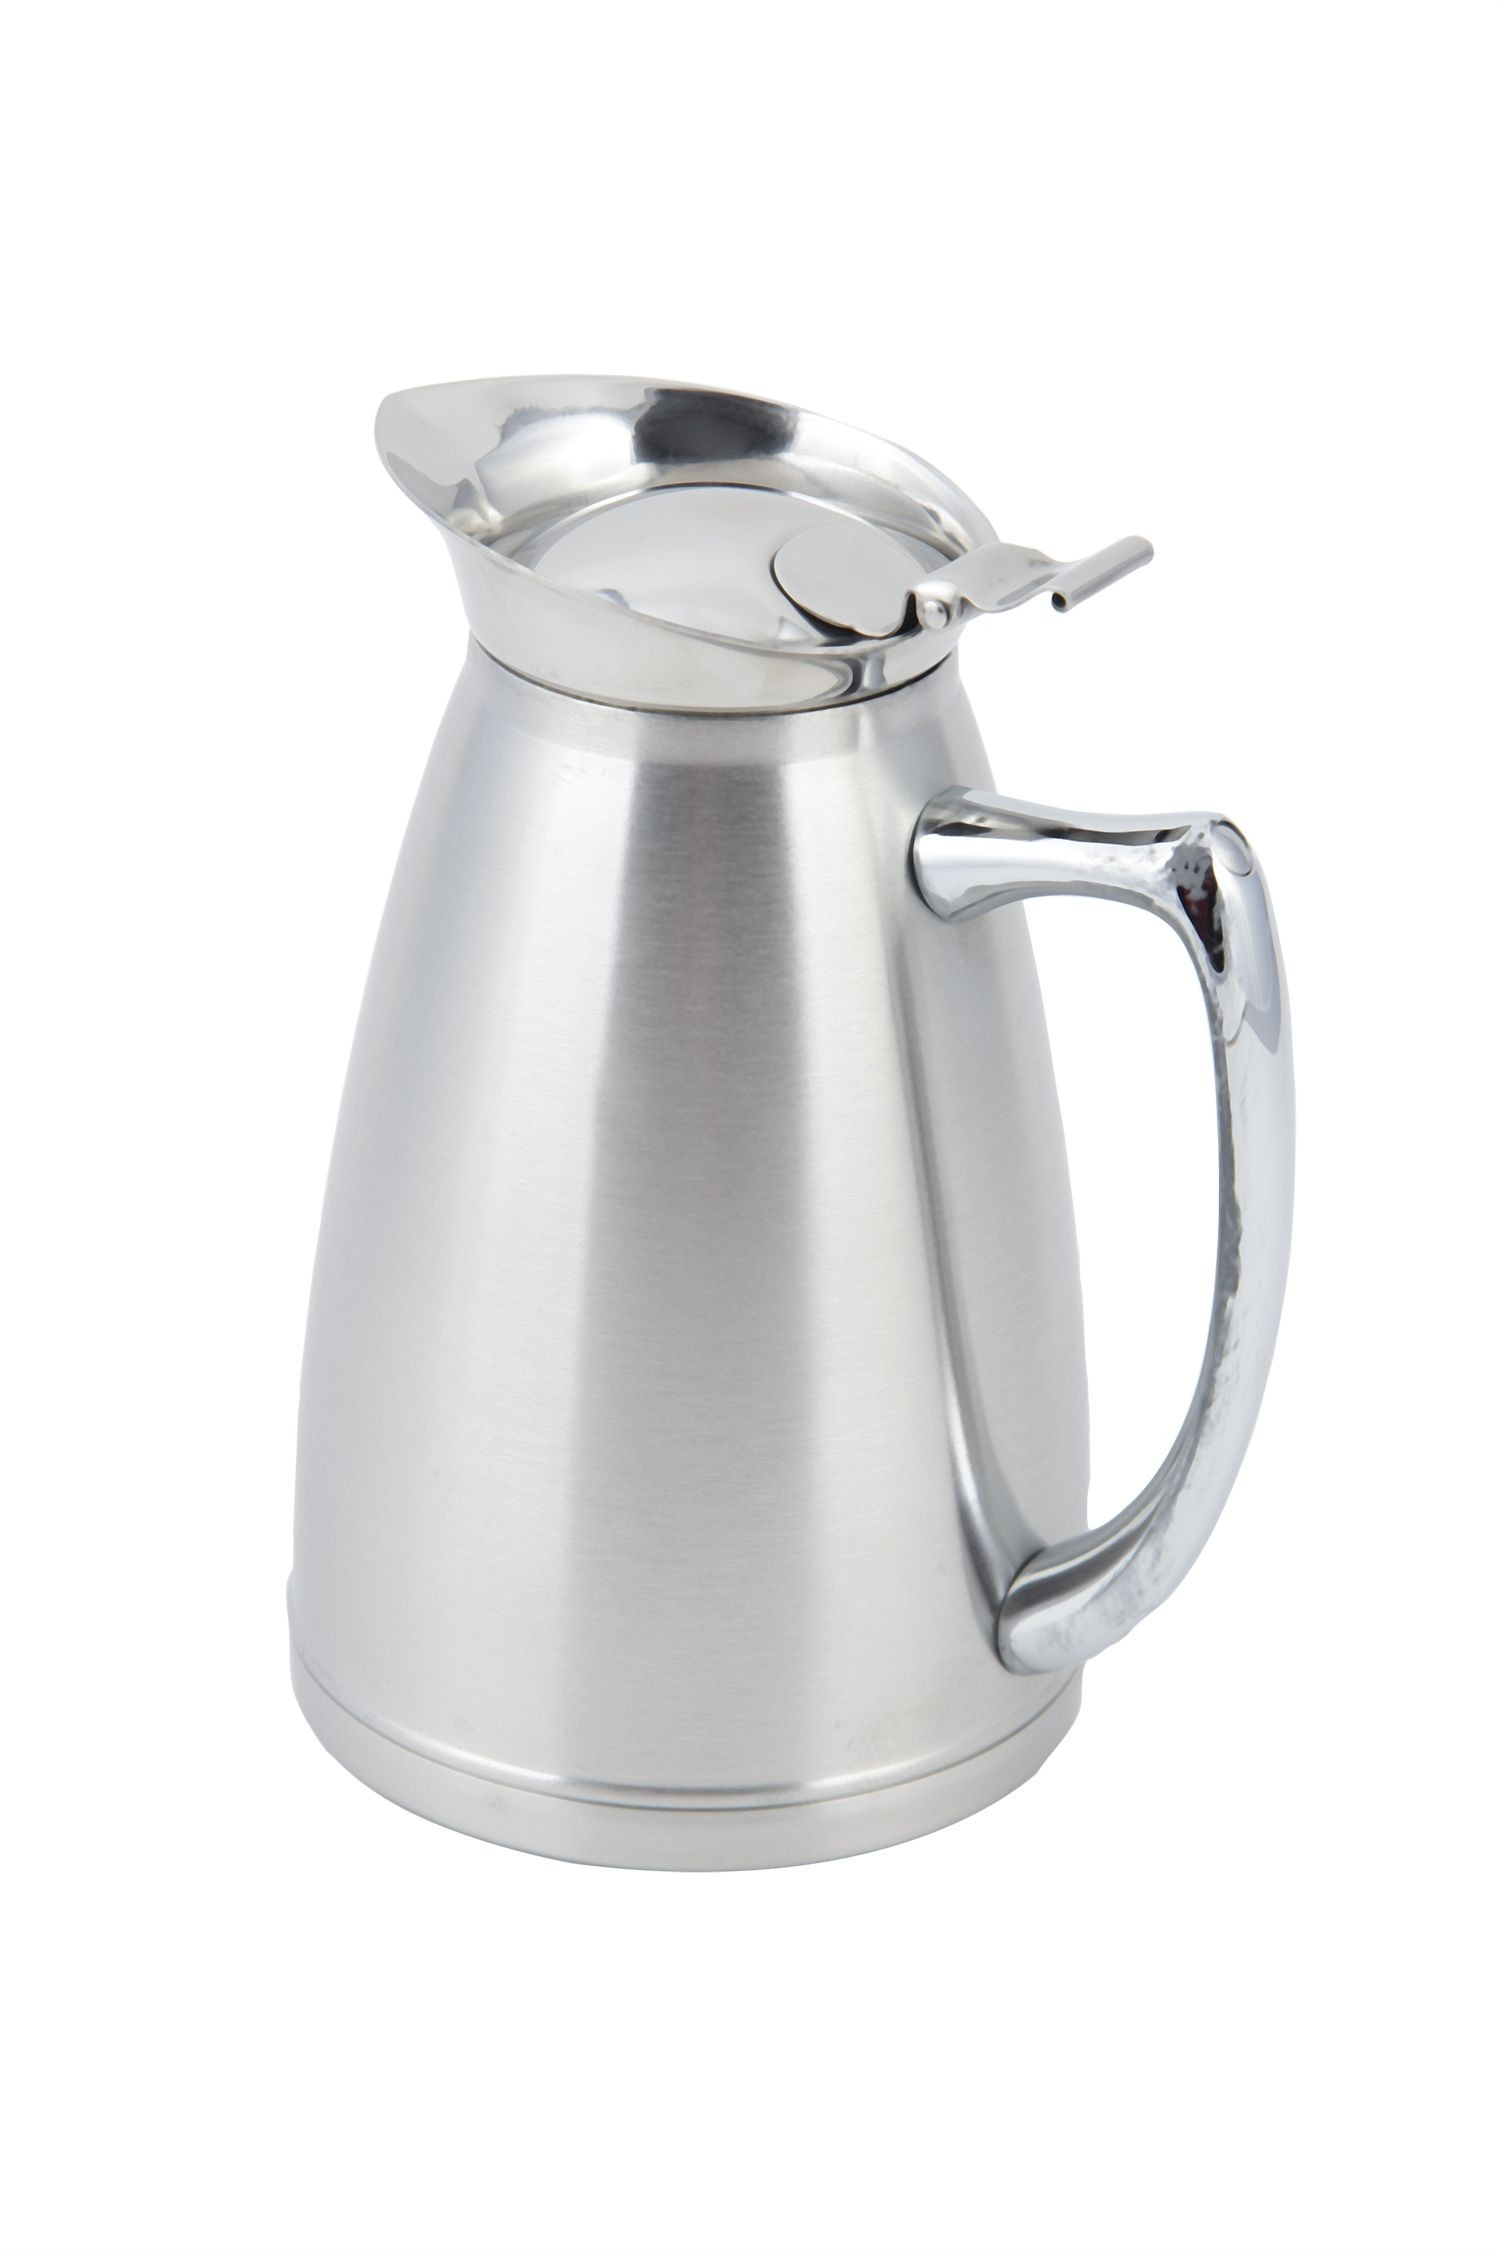 Bon Chef 4050S Stainless Steel Insulated Server with Satin Finish, 10 oz., Set of 6